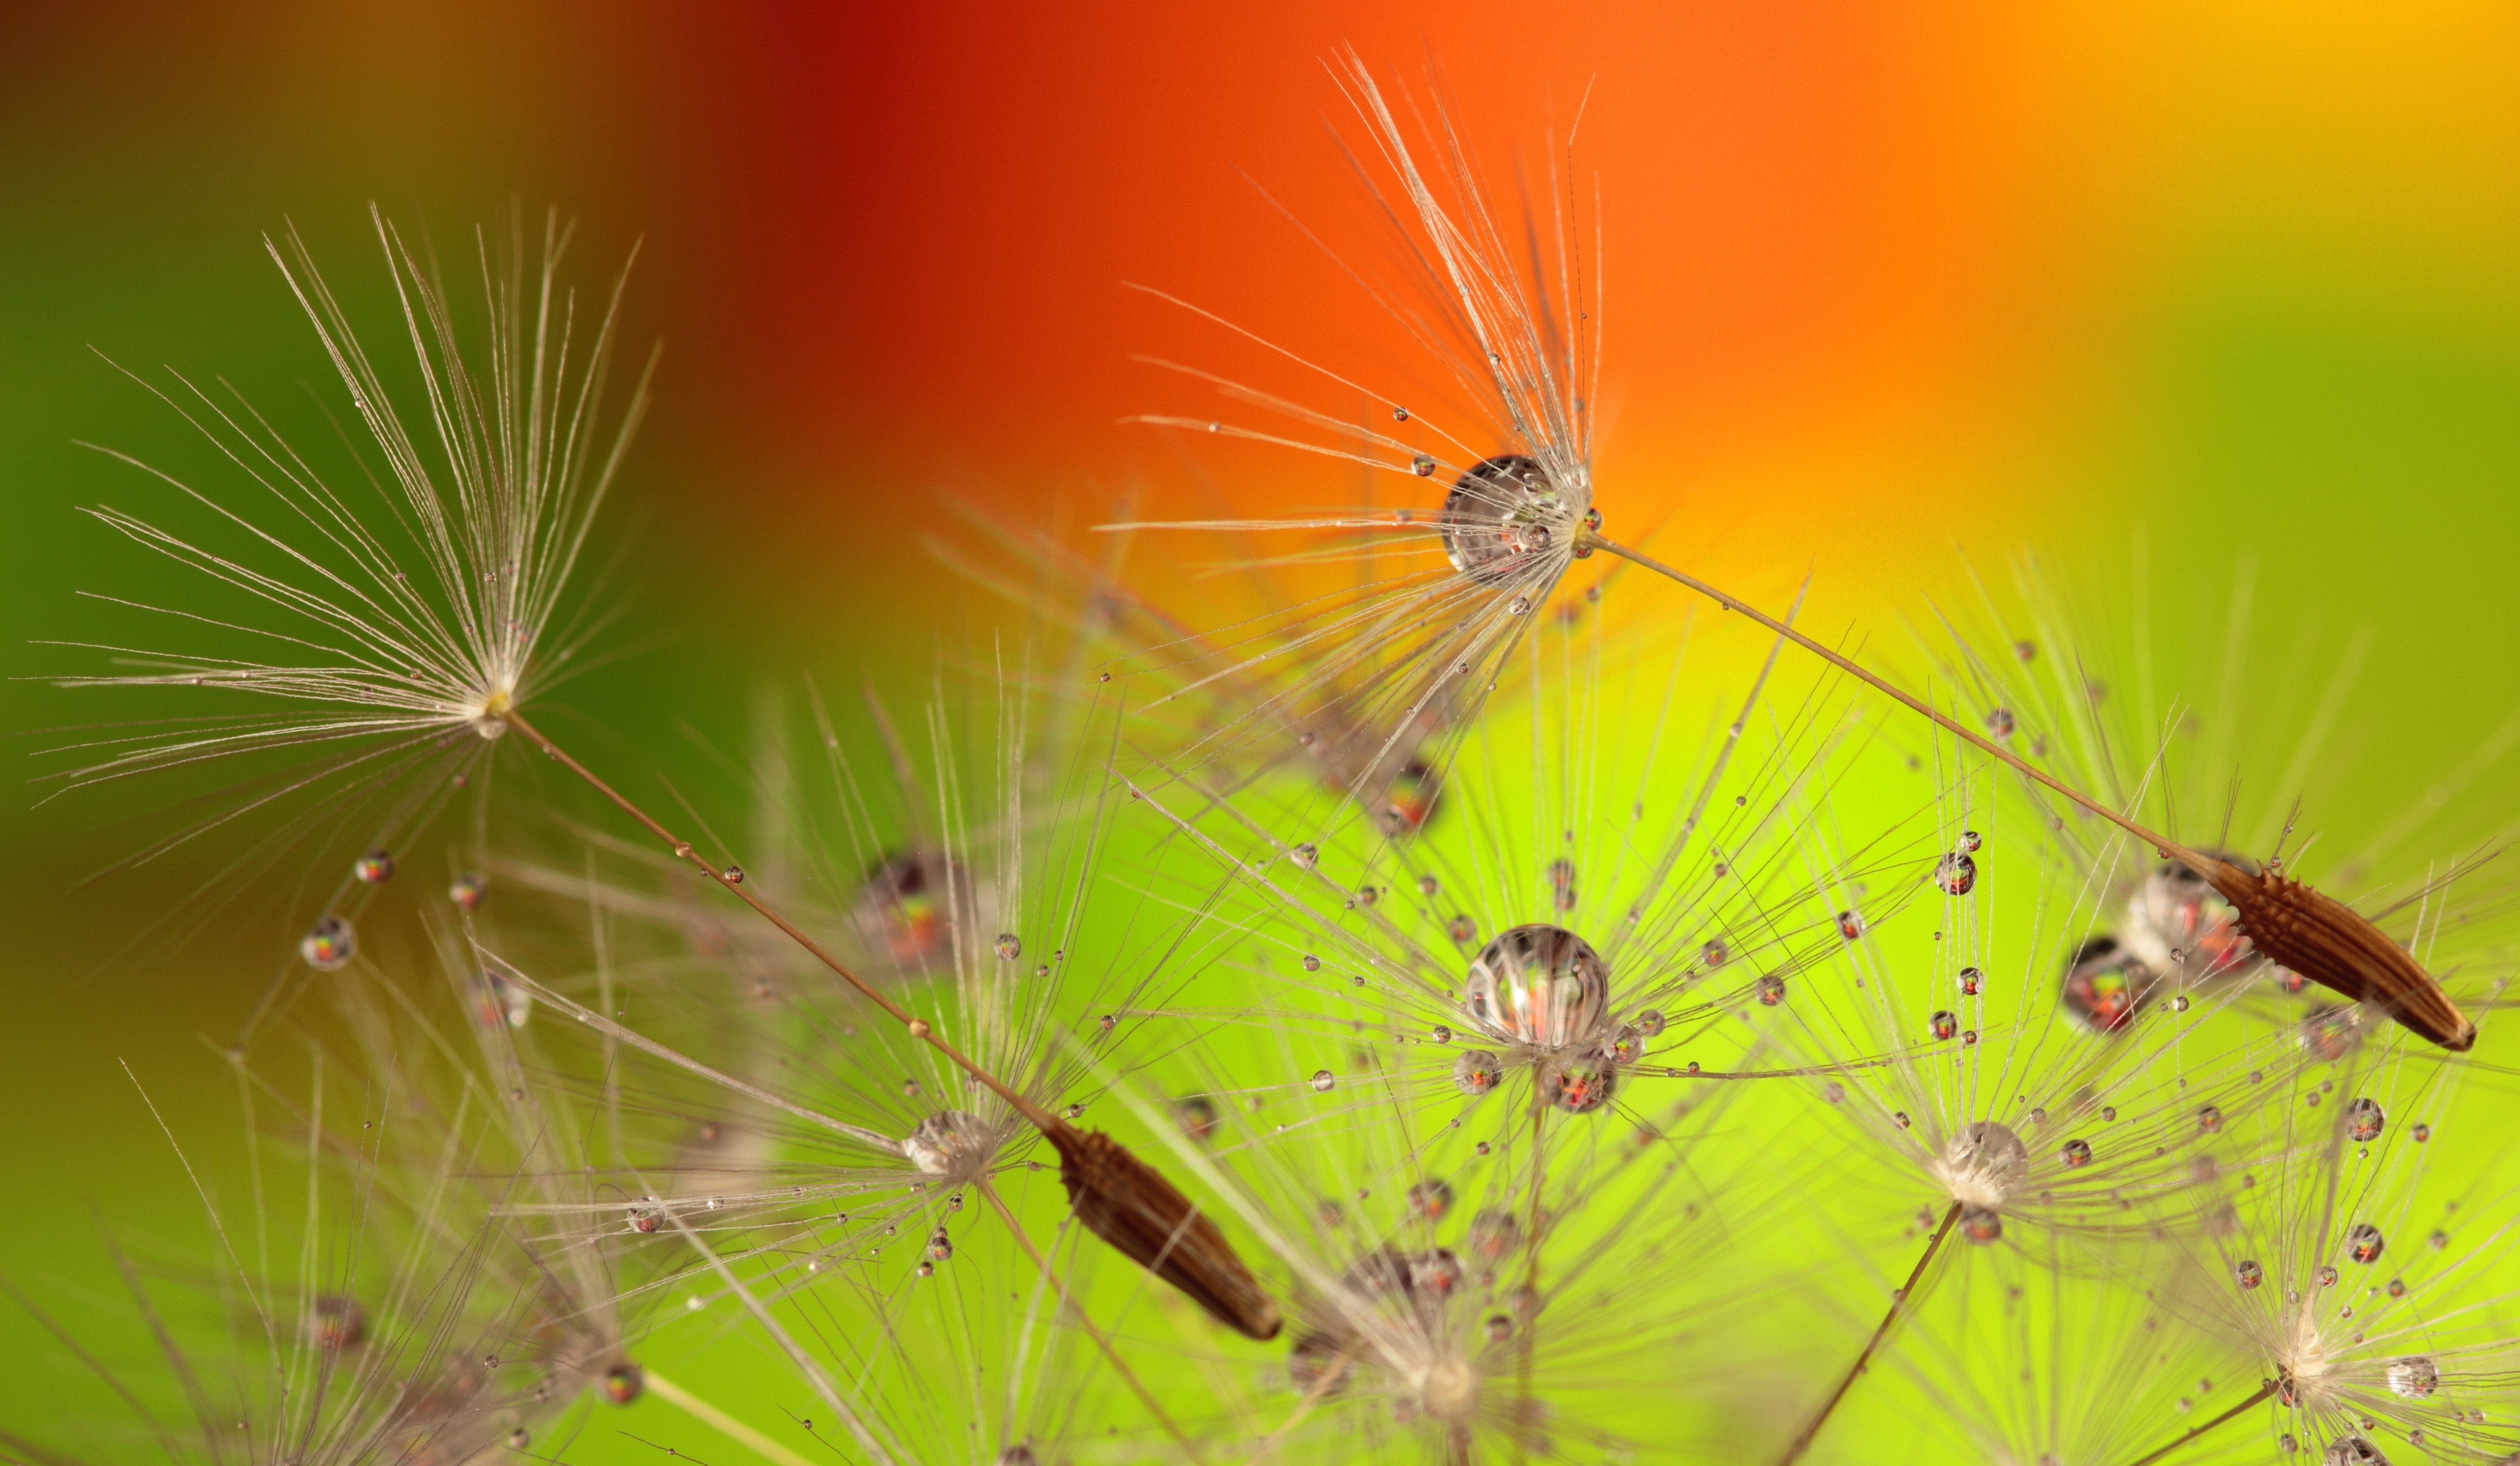 Petaled Flowers With Dew Drops On Close Up Photography